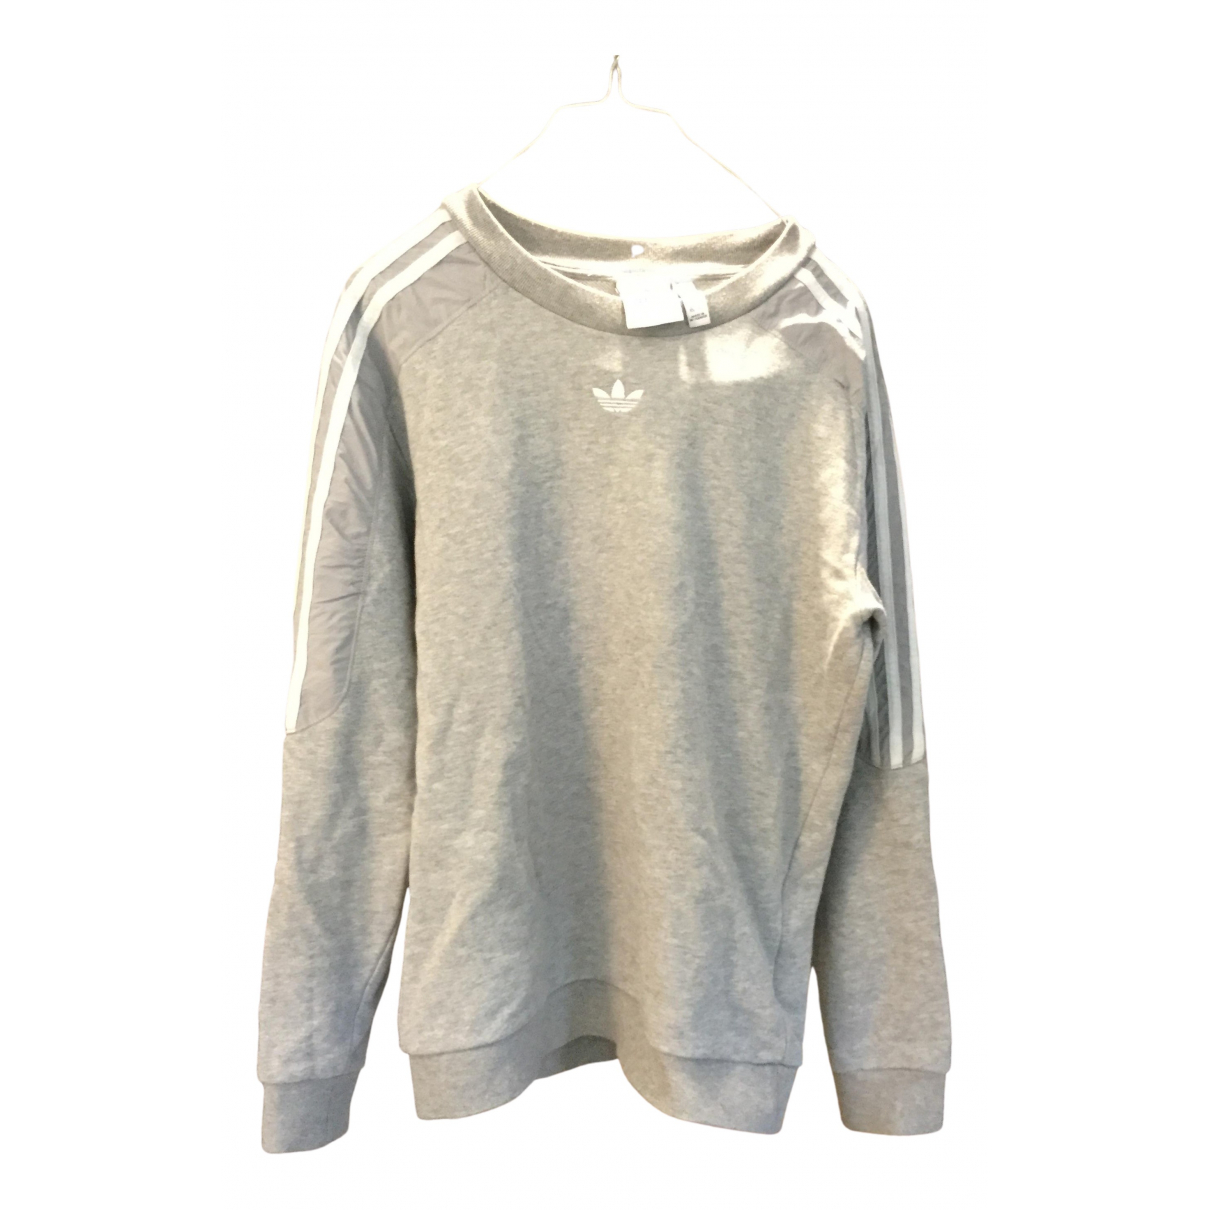 Adidas N Grey Cotton Knitwear & Sweatshirts for Men XS International